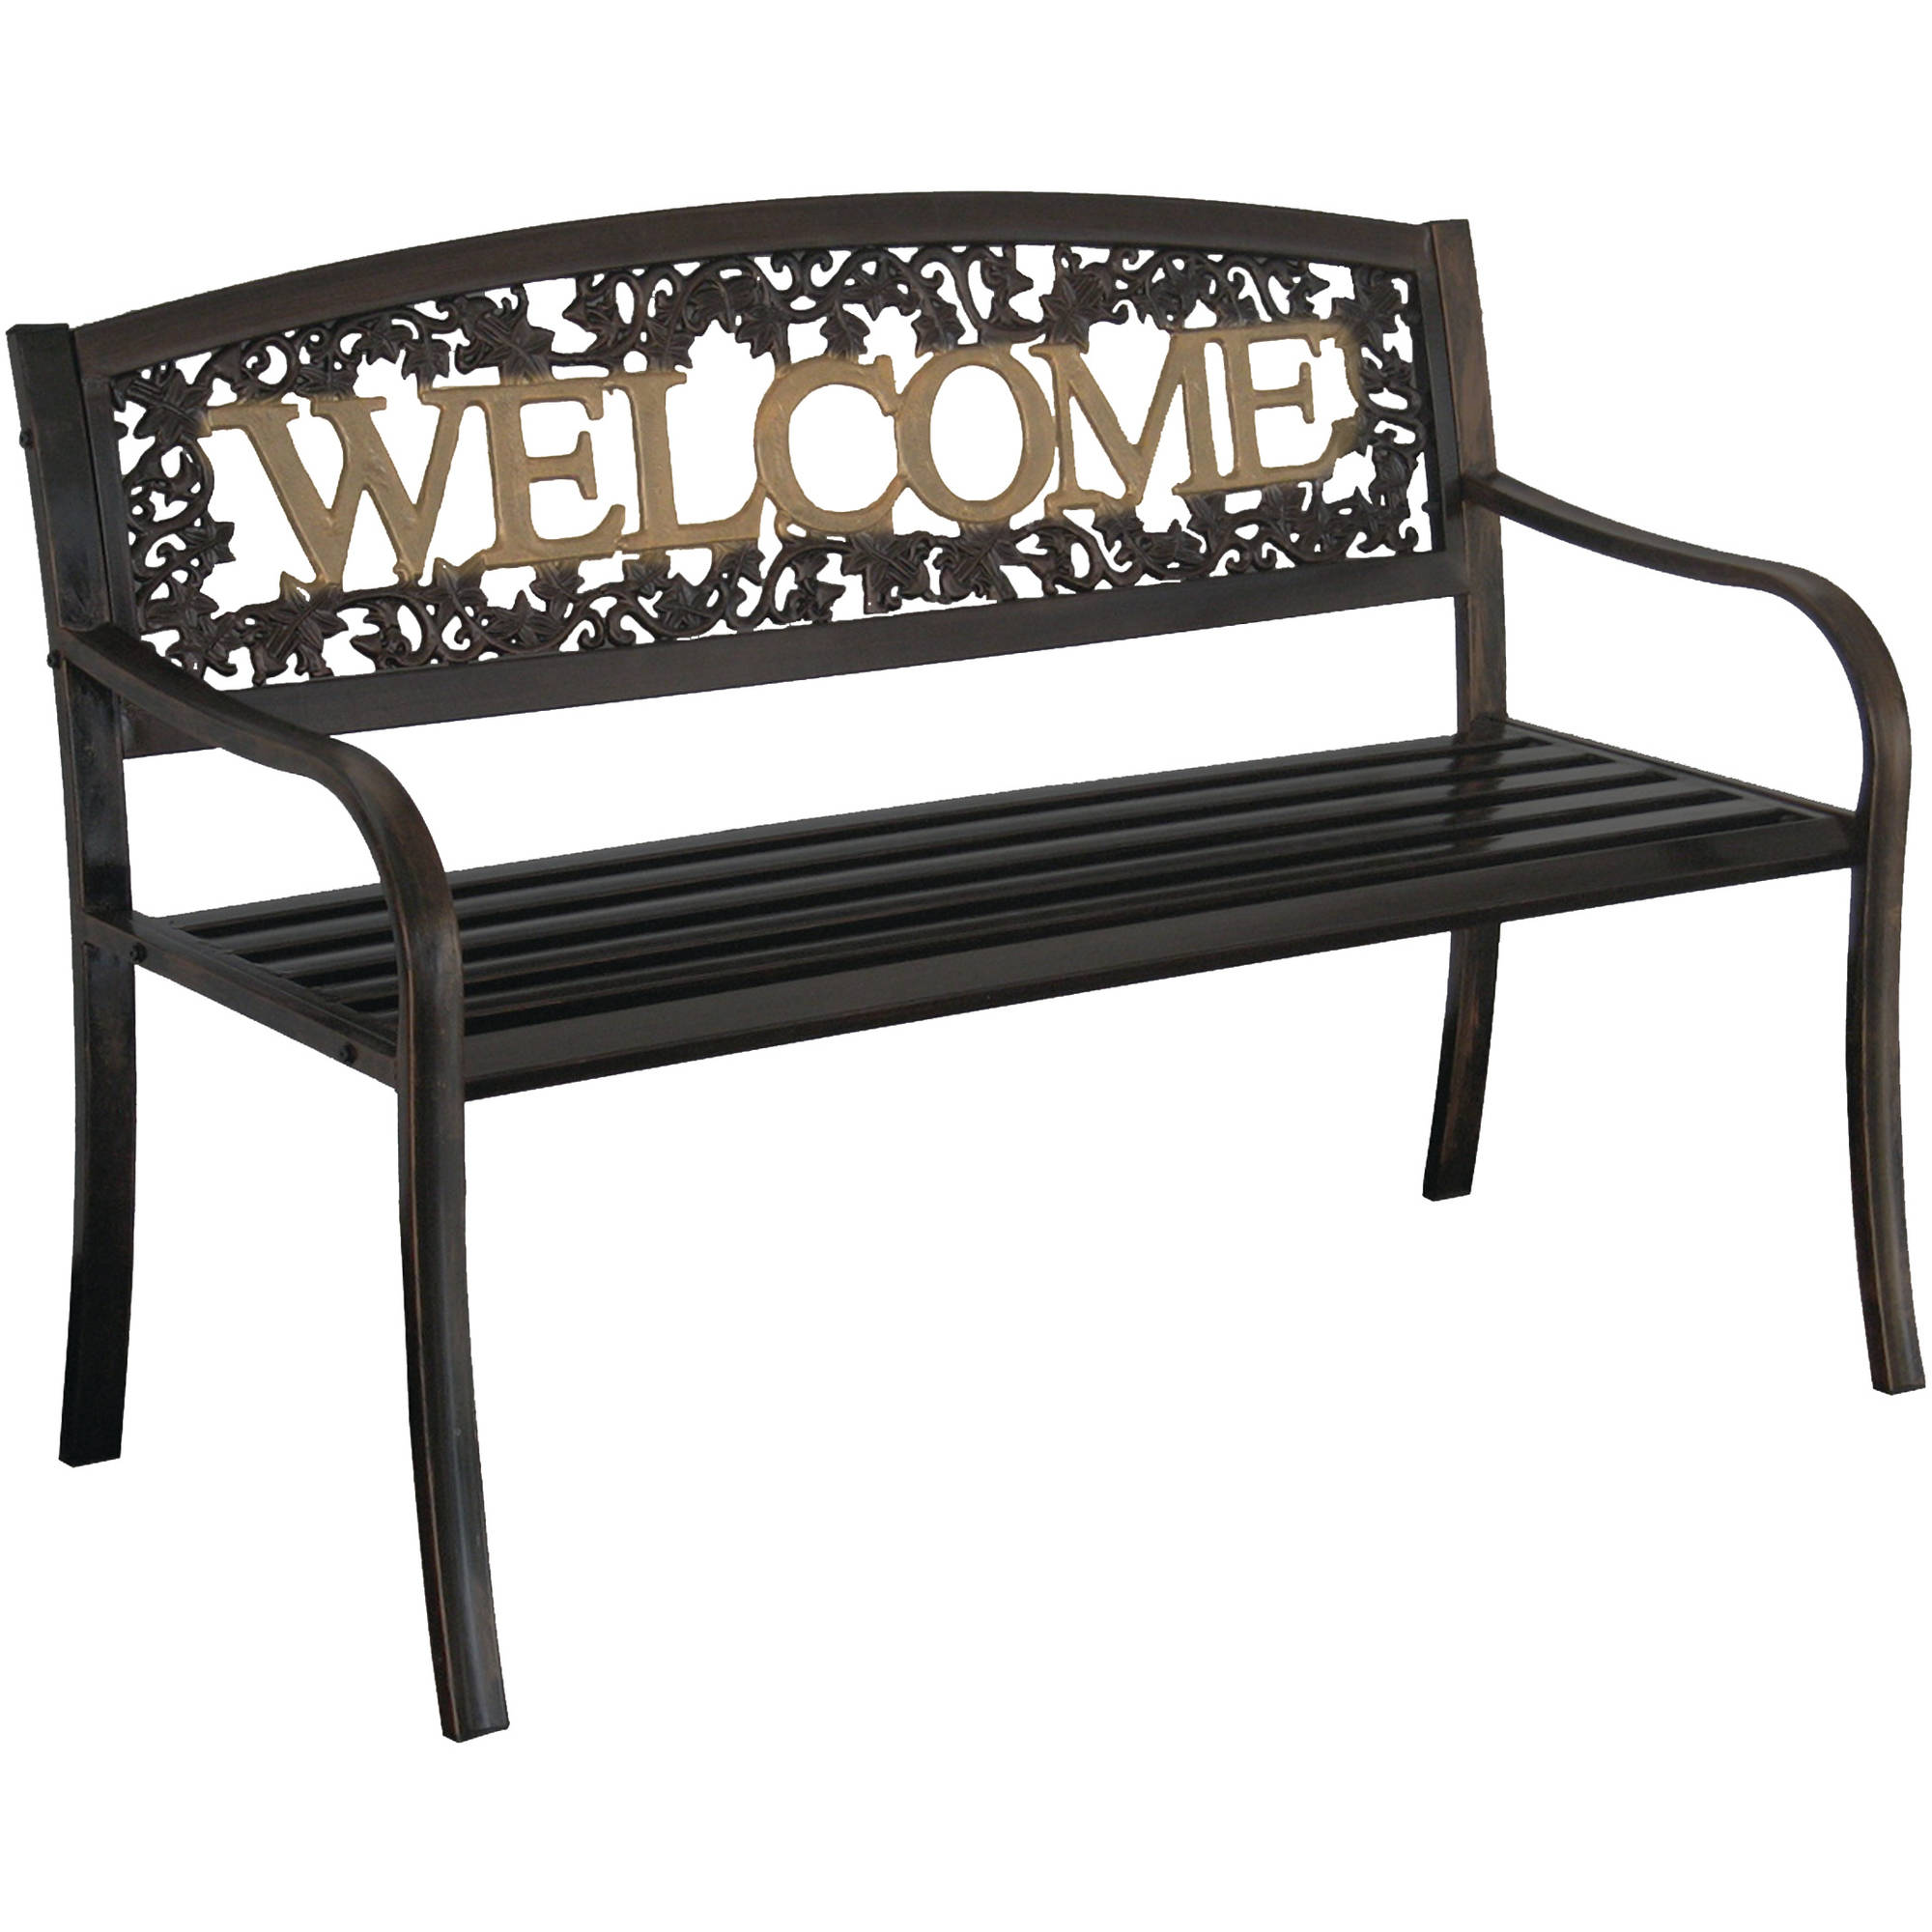 Leigh Country Welcome Outdoor Garden Bench, Black/Gold